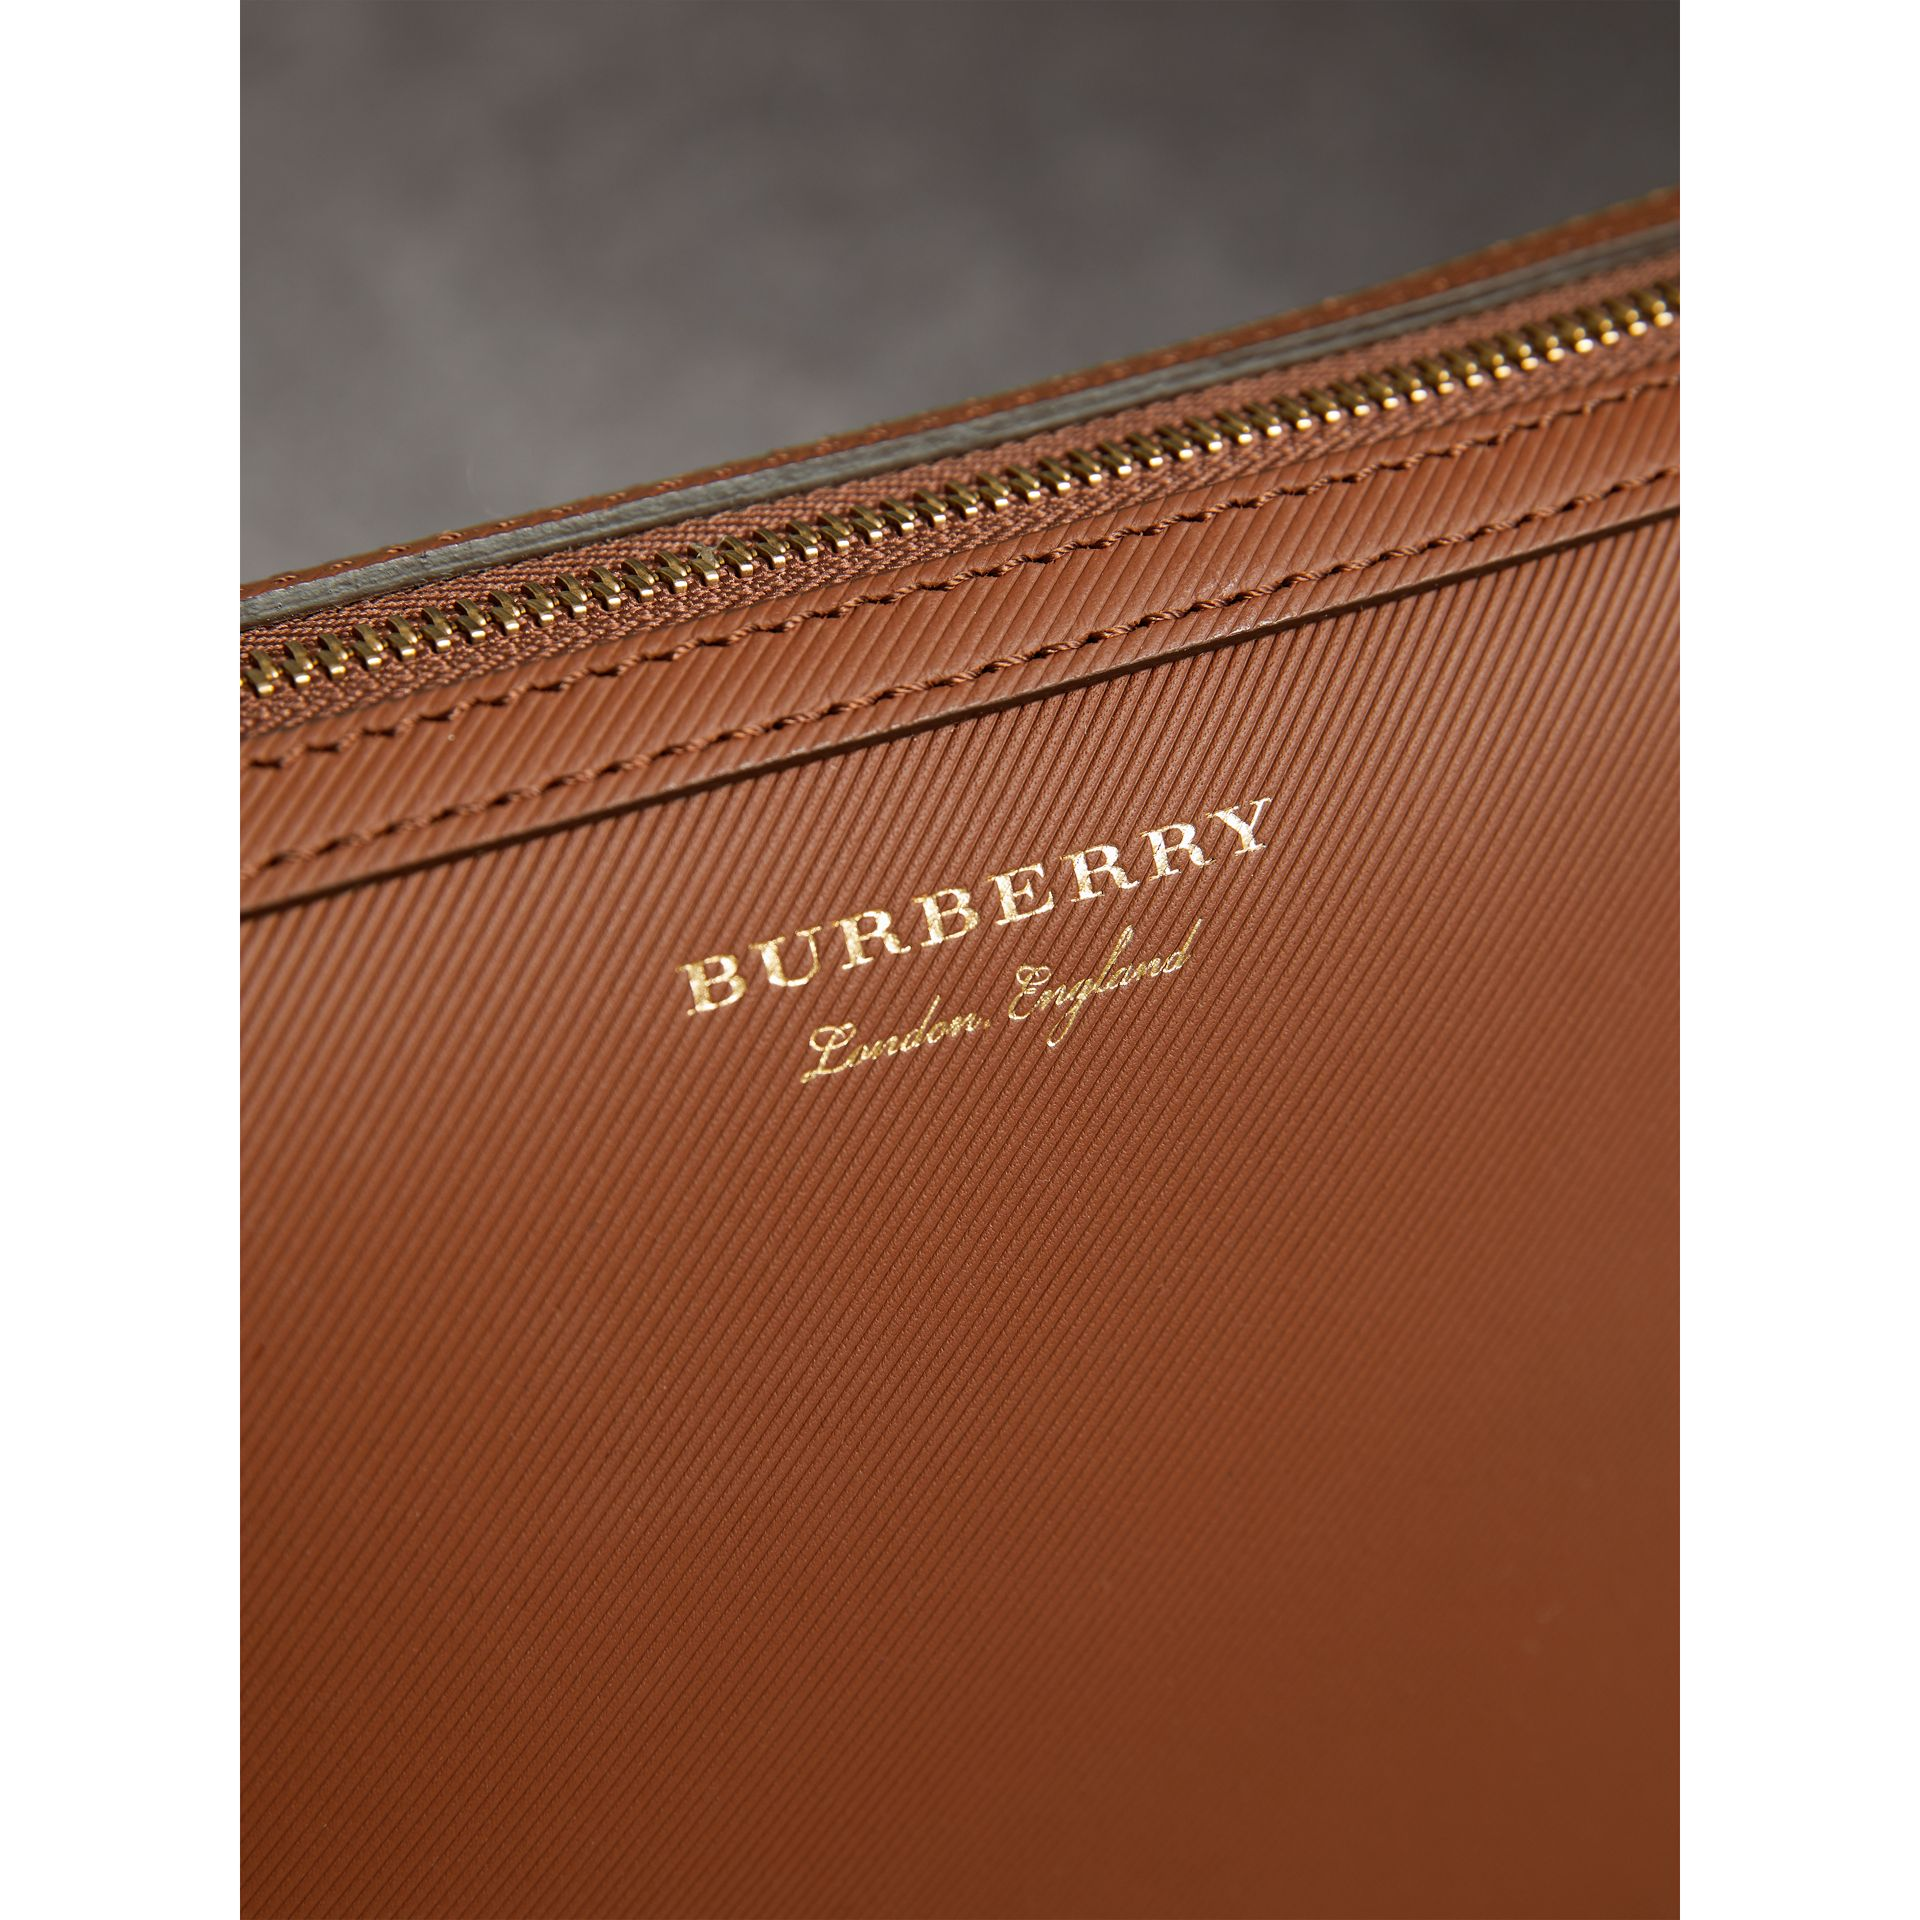 Trench Leather Pouch in Tan | Burberry - gallery image 1